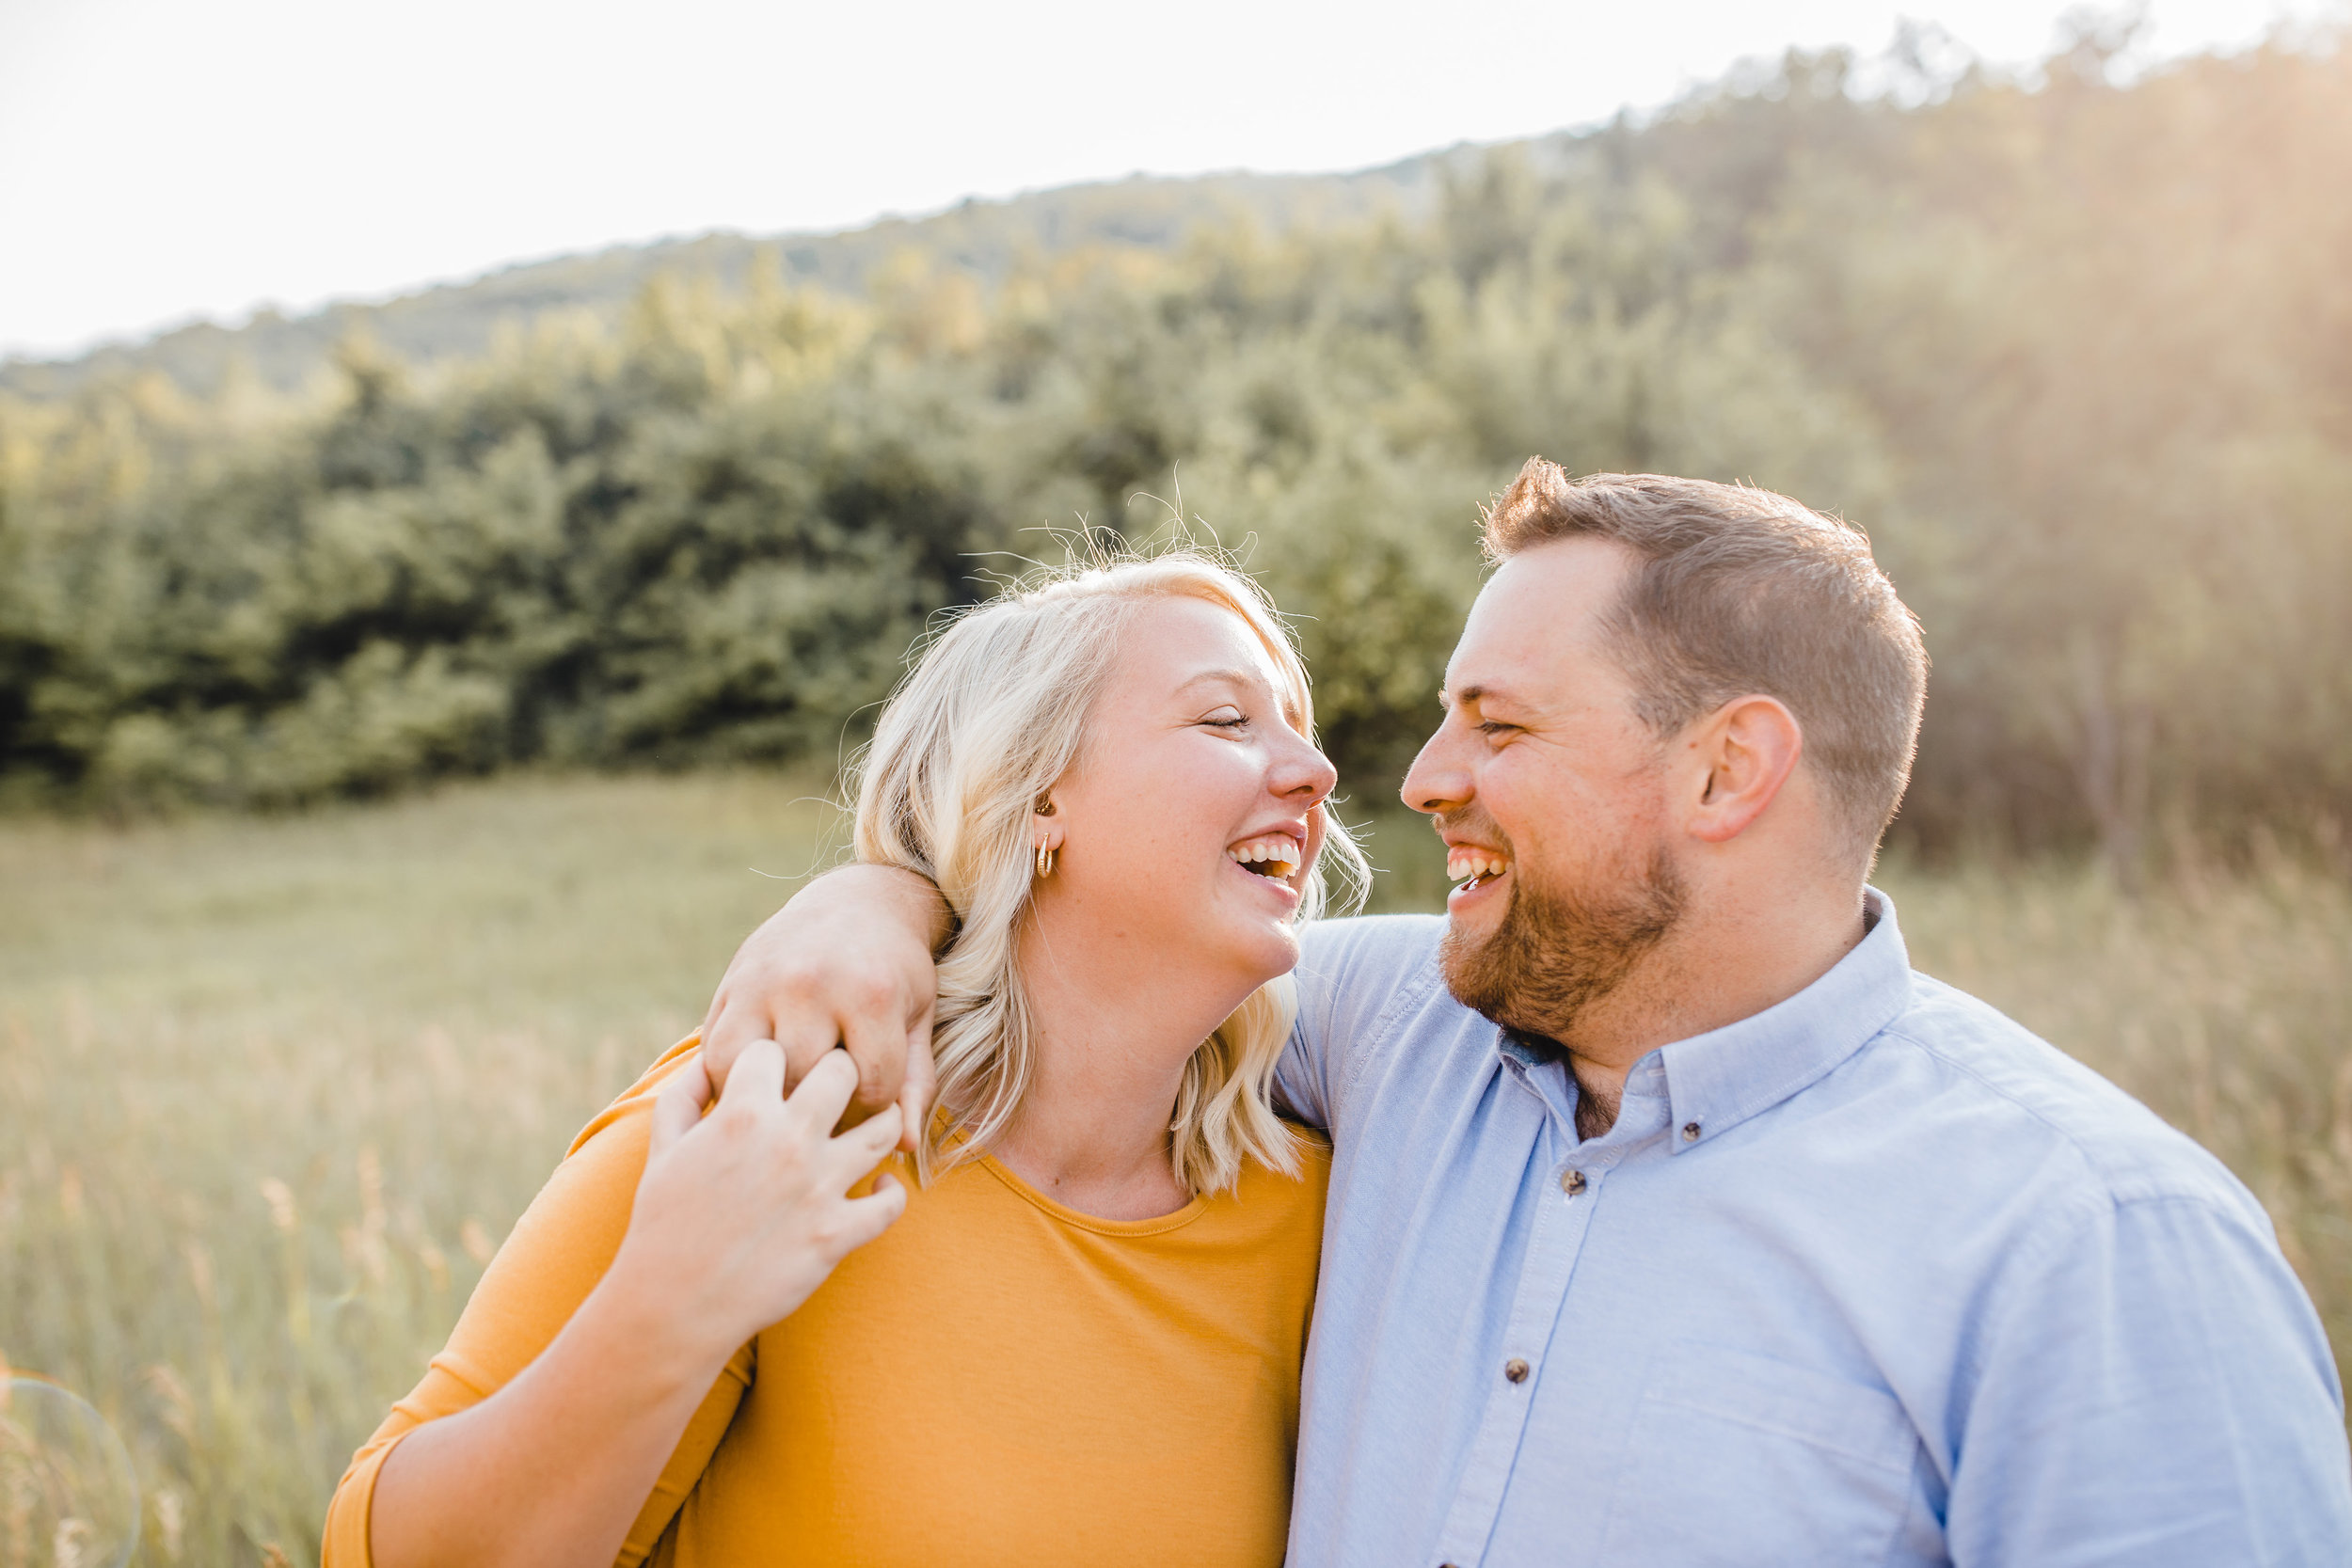 brigham city utah engagement photographer best marigold dress laughing hugging mountain backdrop